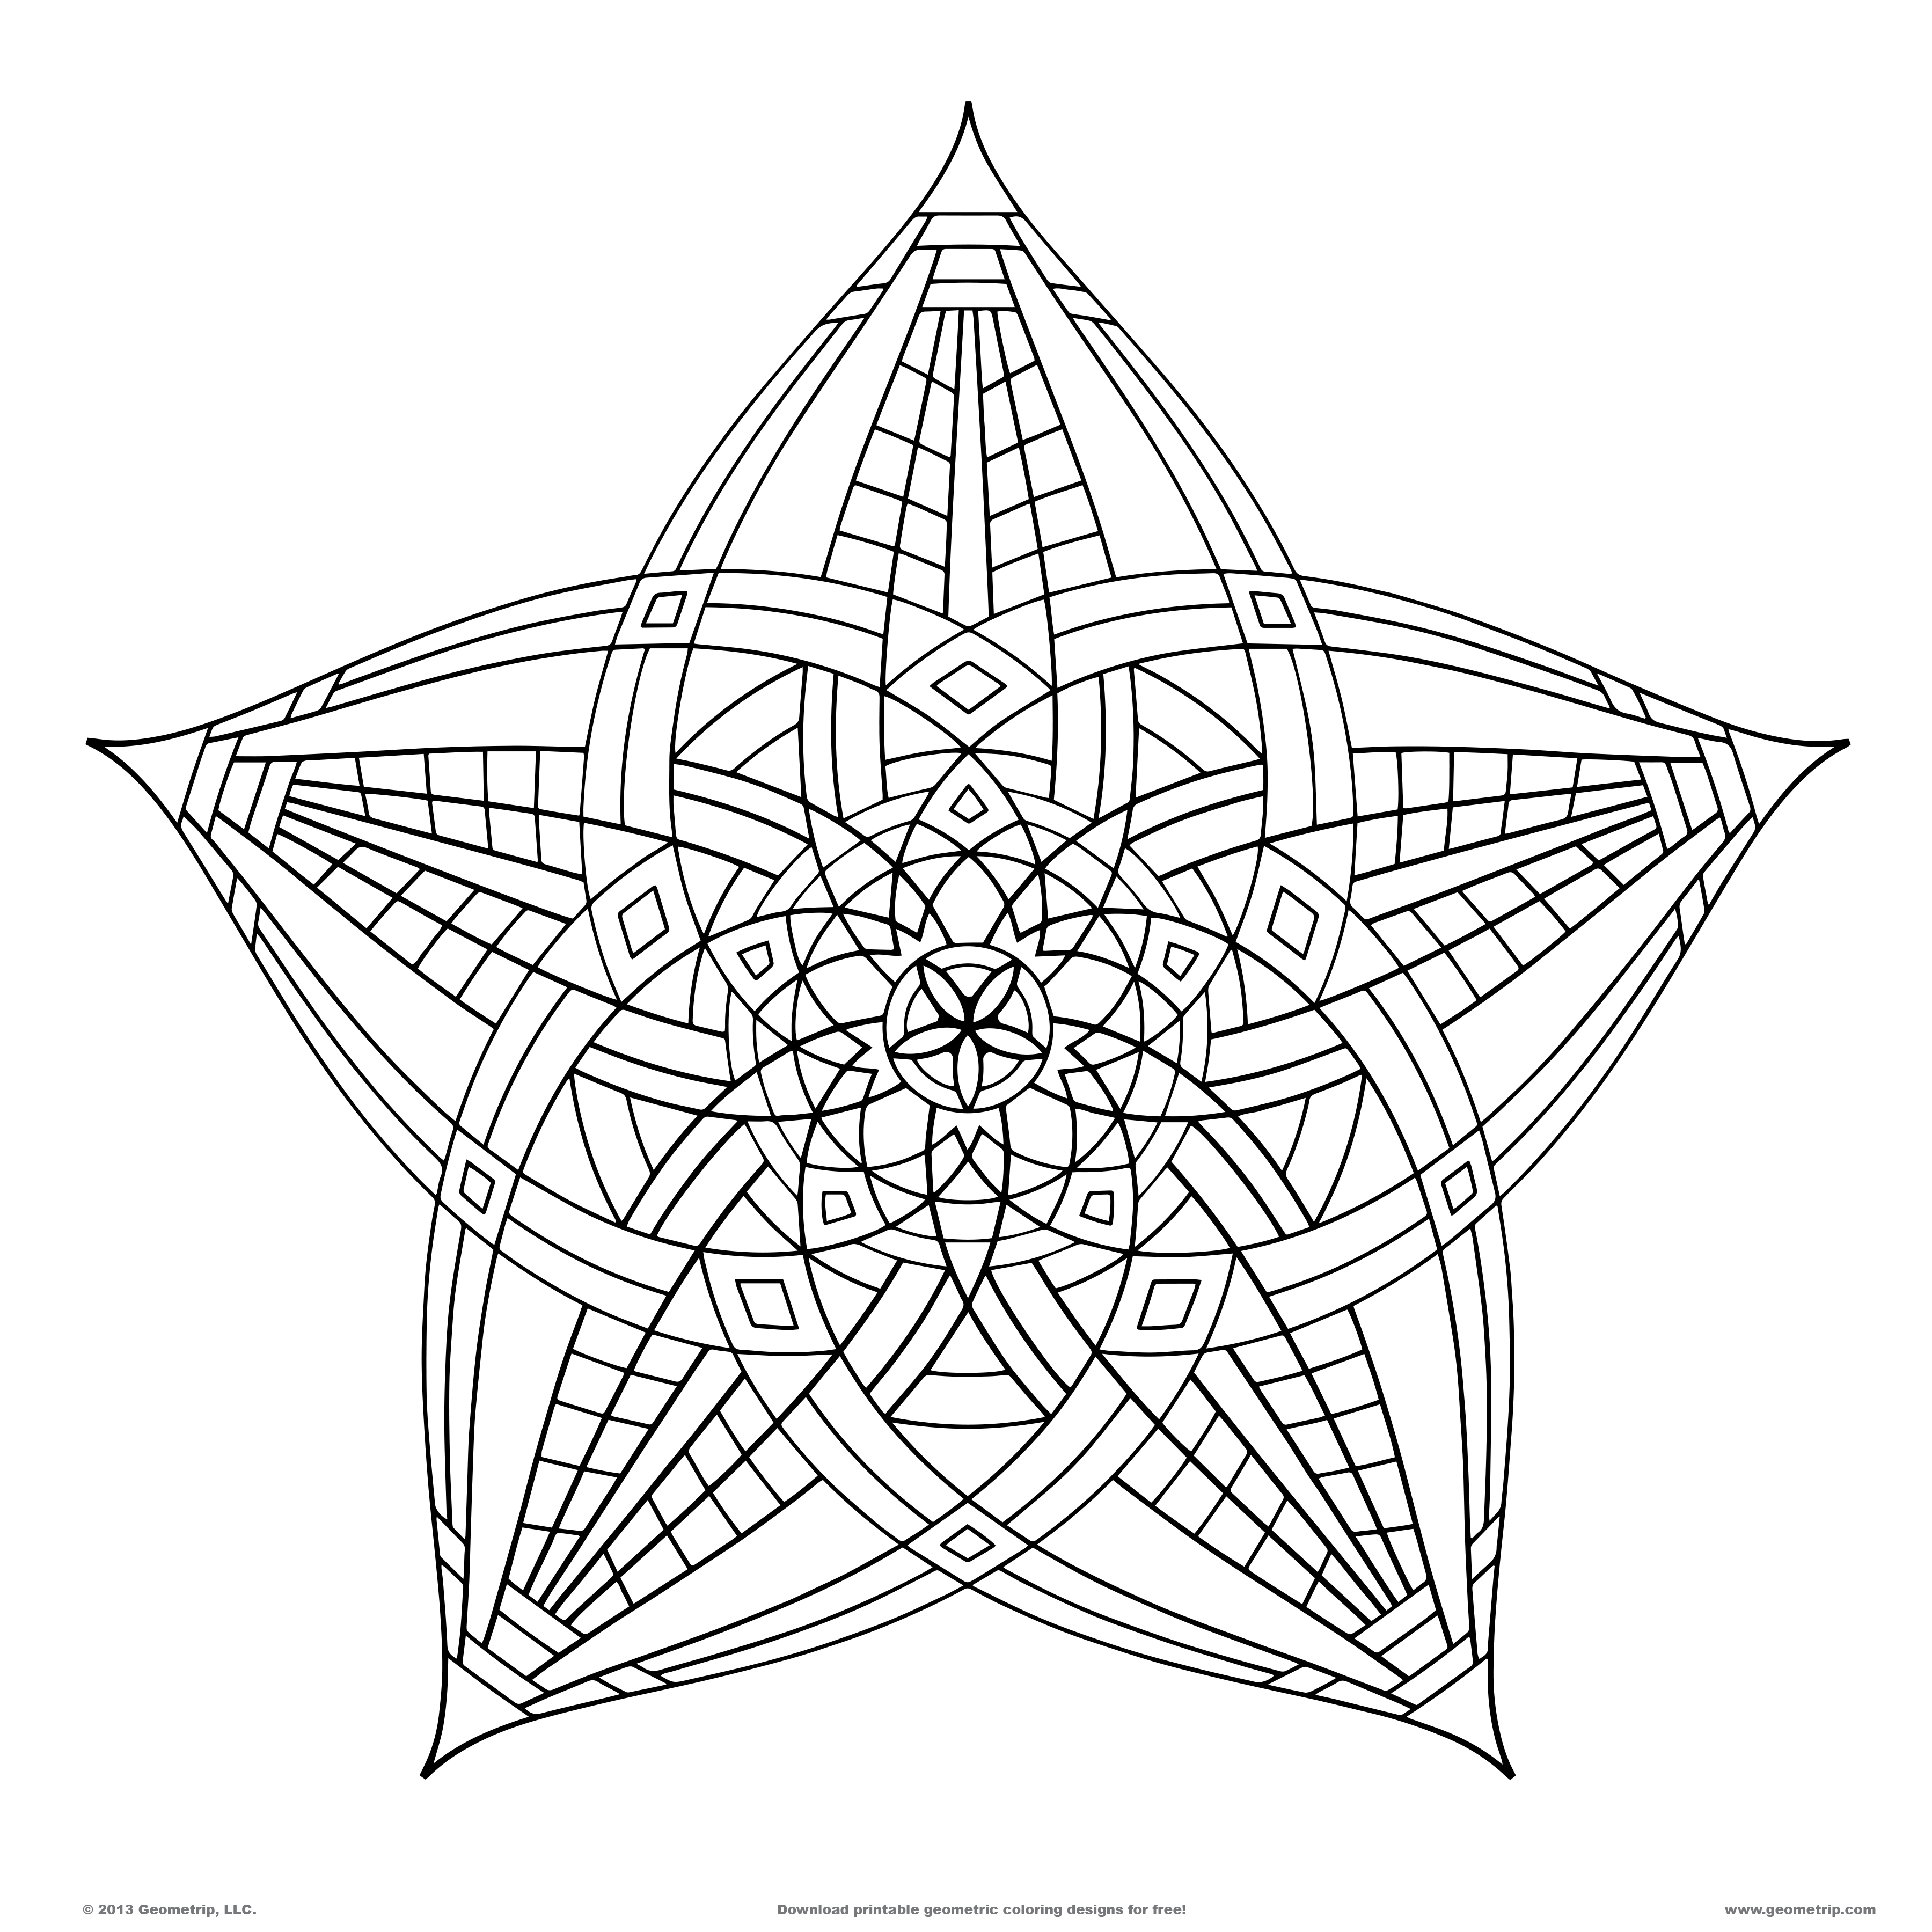 cool designs to color cool coloring pages getcoloringpagescom to cool color designs